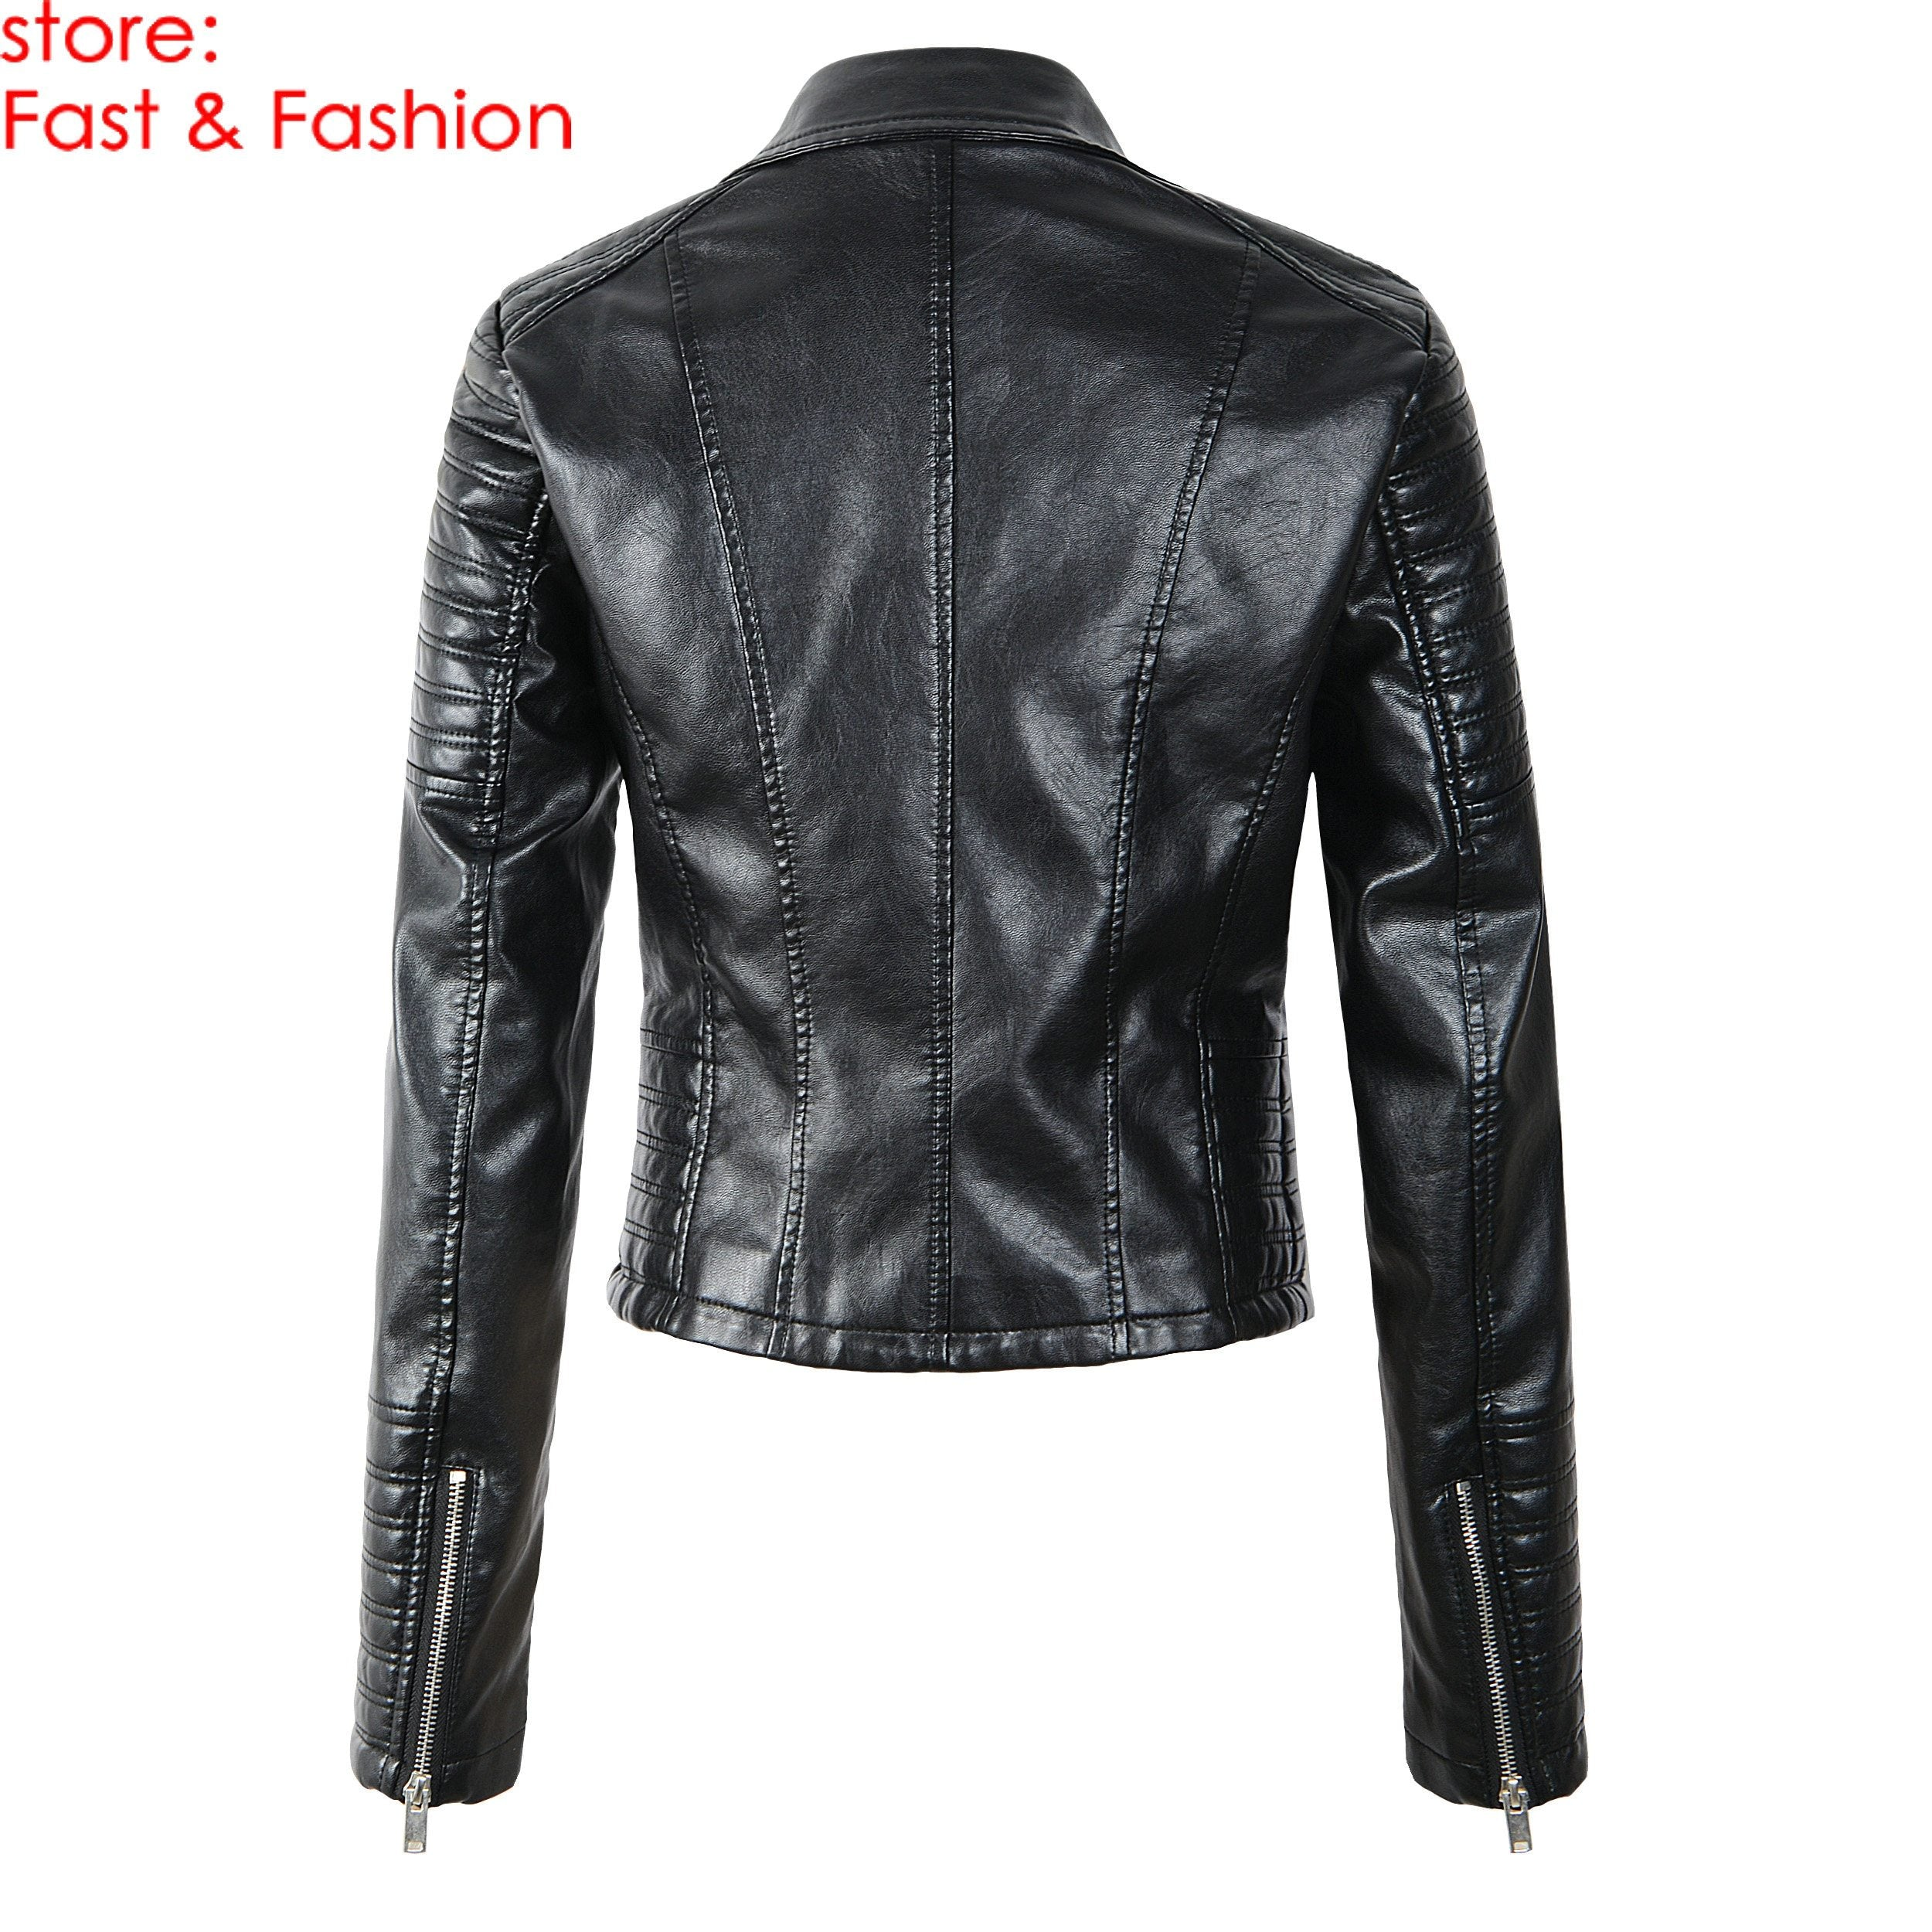 Taking A Trip Leather Jacket